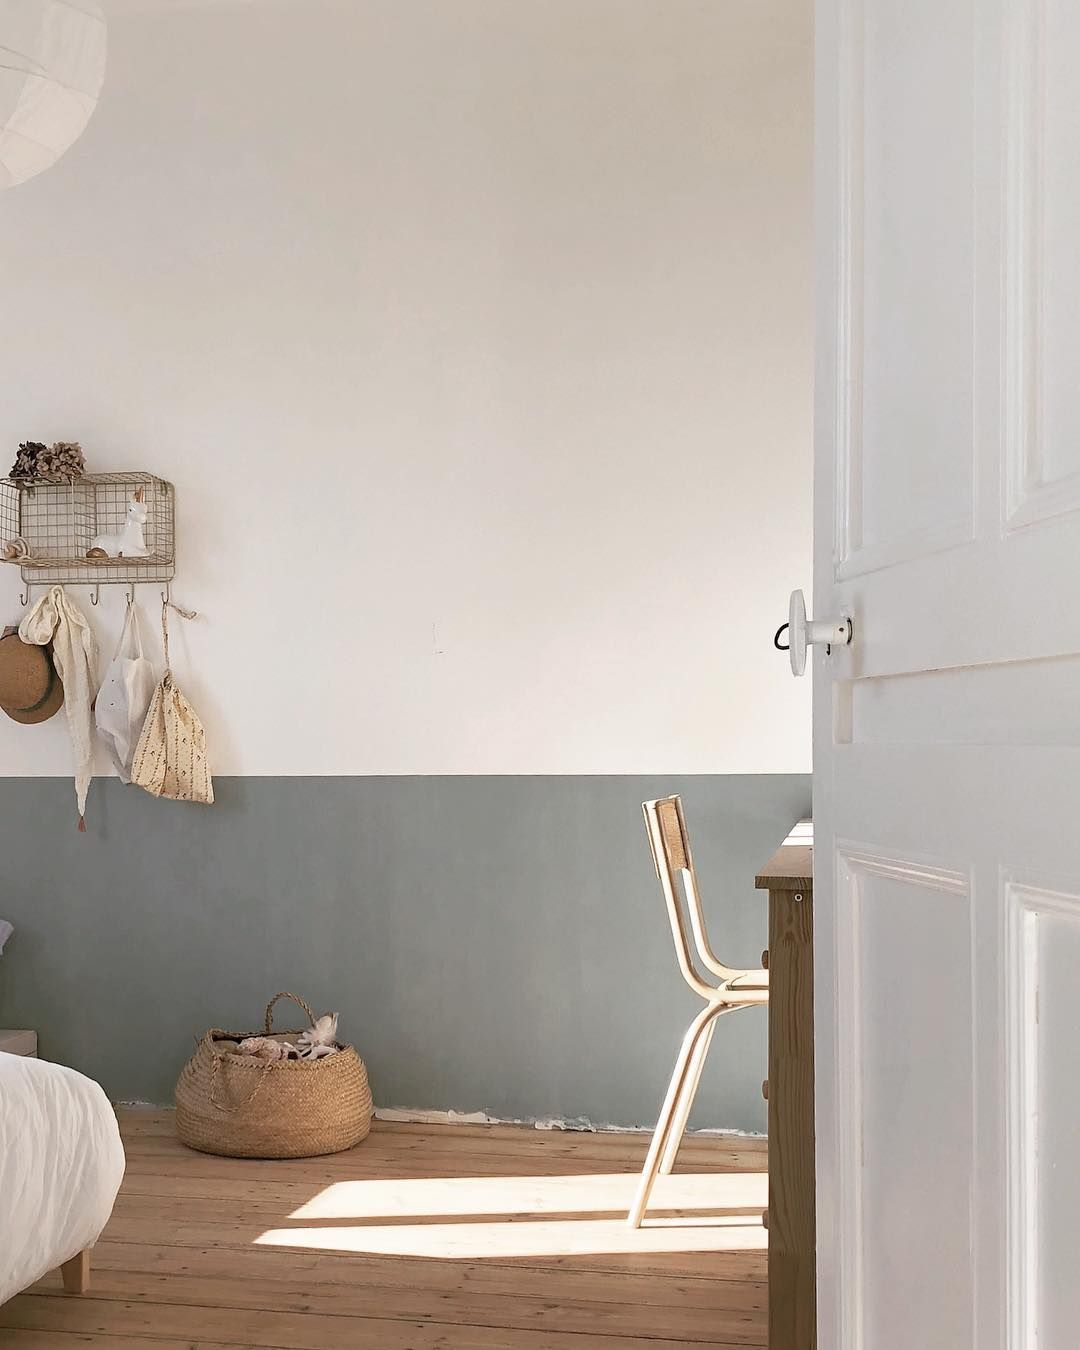 Pin By Suzanne Van Walderveen On Dwell House To Home Rustic Baby Rooms Minimalist Kids Room Children Room Girl